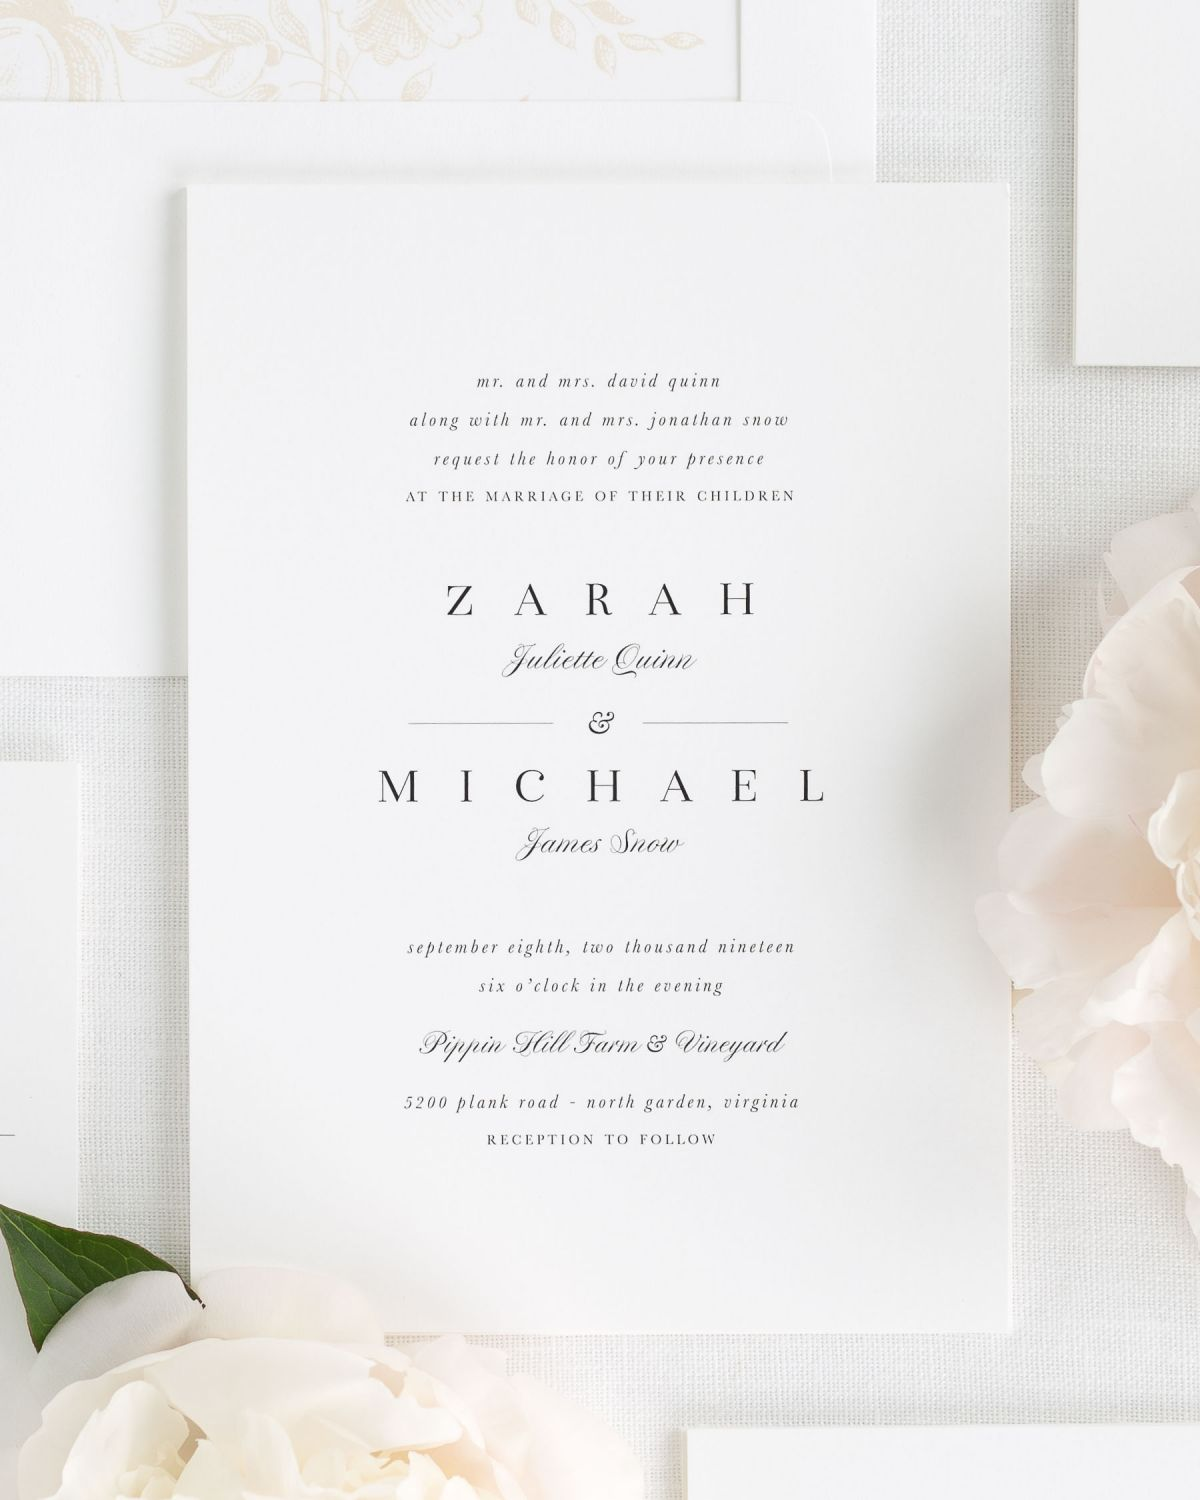 Zarah wedding invitations wedding invitations by shine small non script names wedding invitations stopboris Choice Image